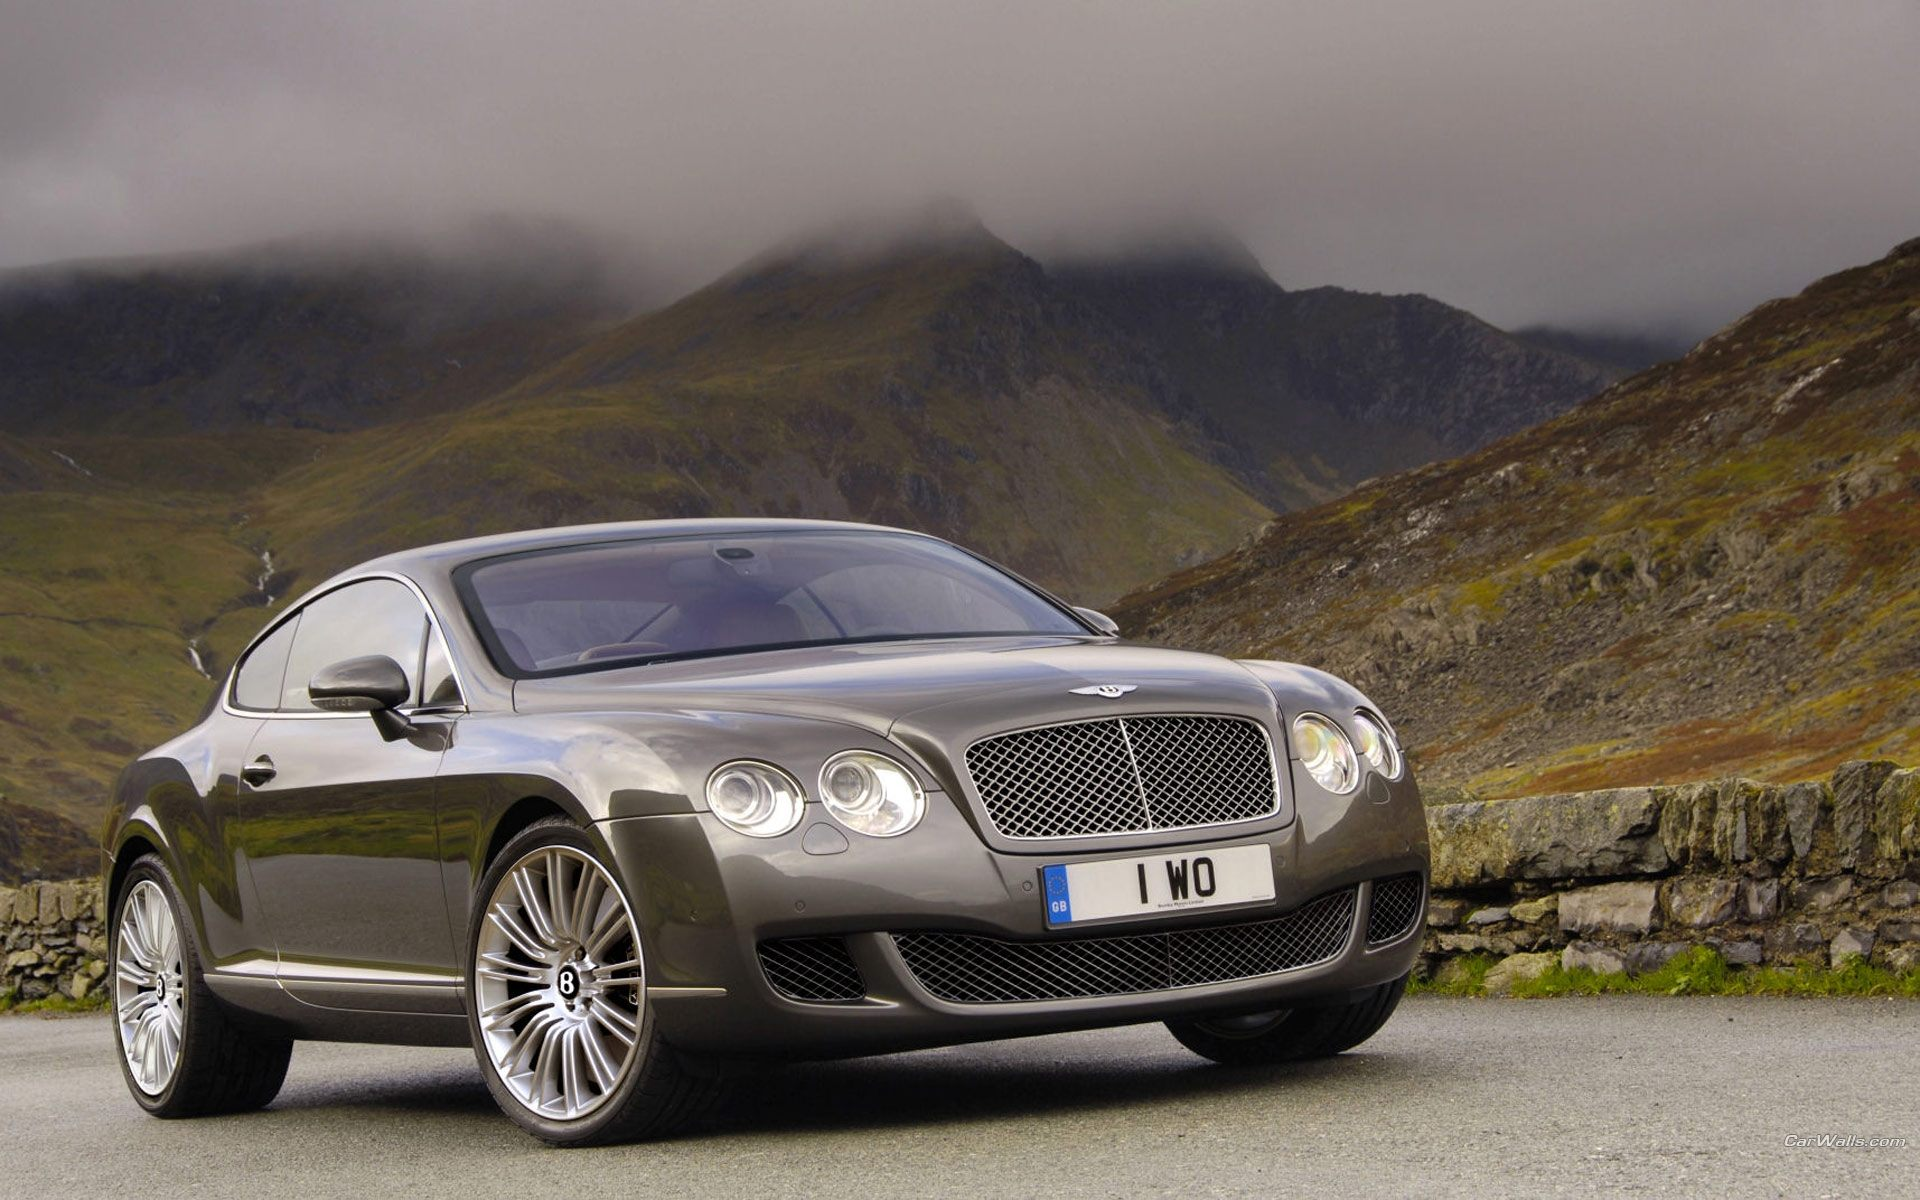 Bentley Continental в горах обои, картинки, фото